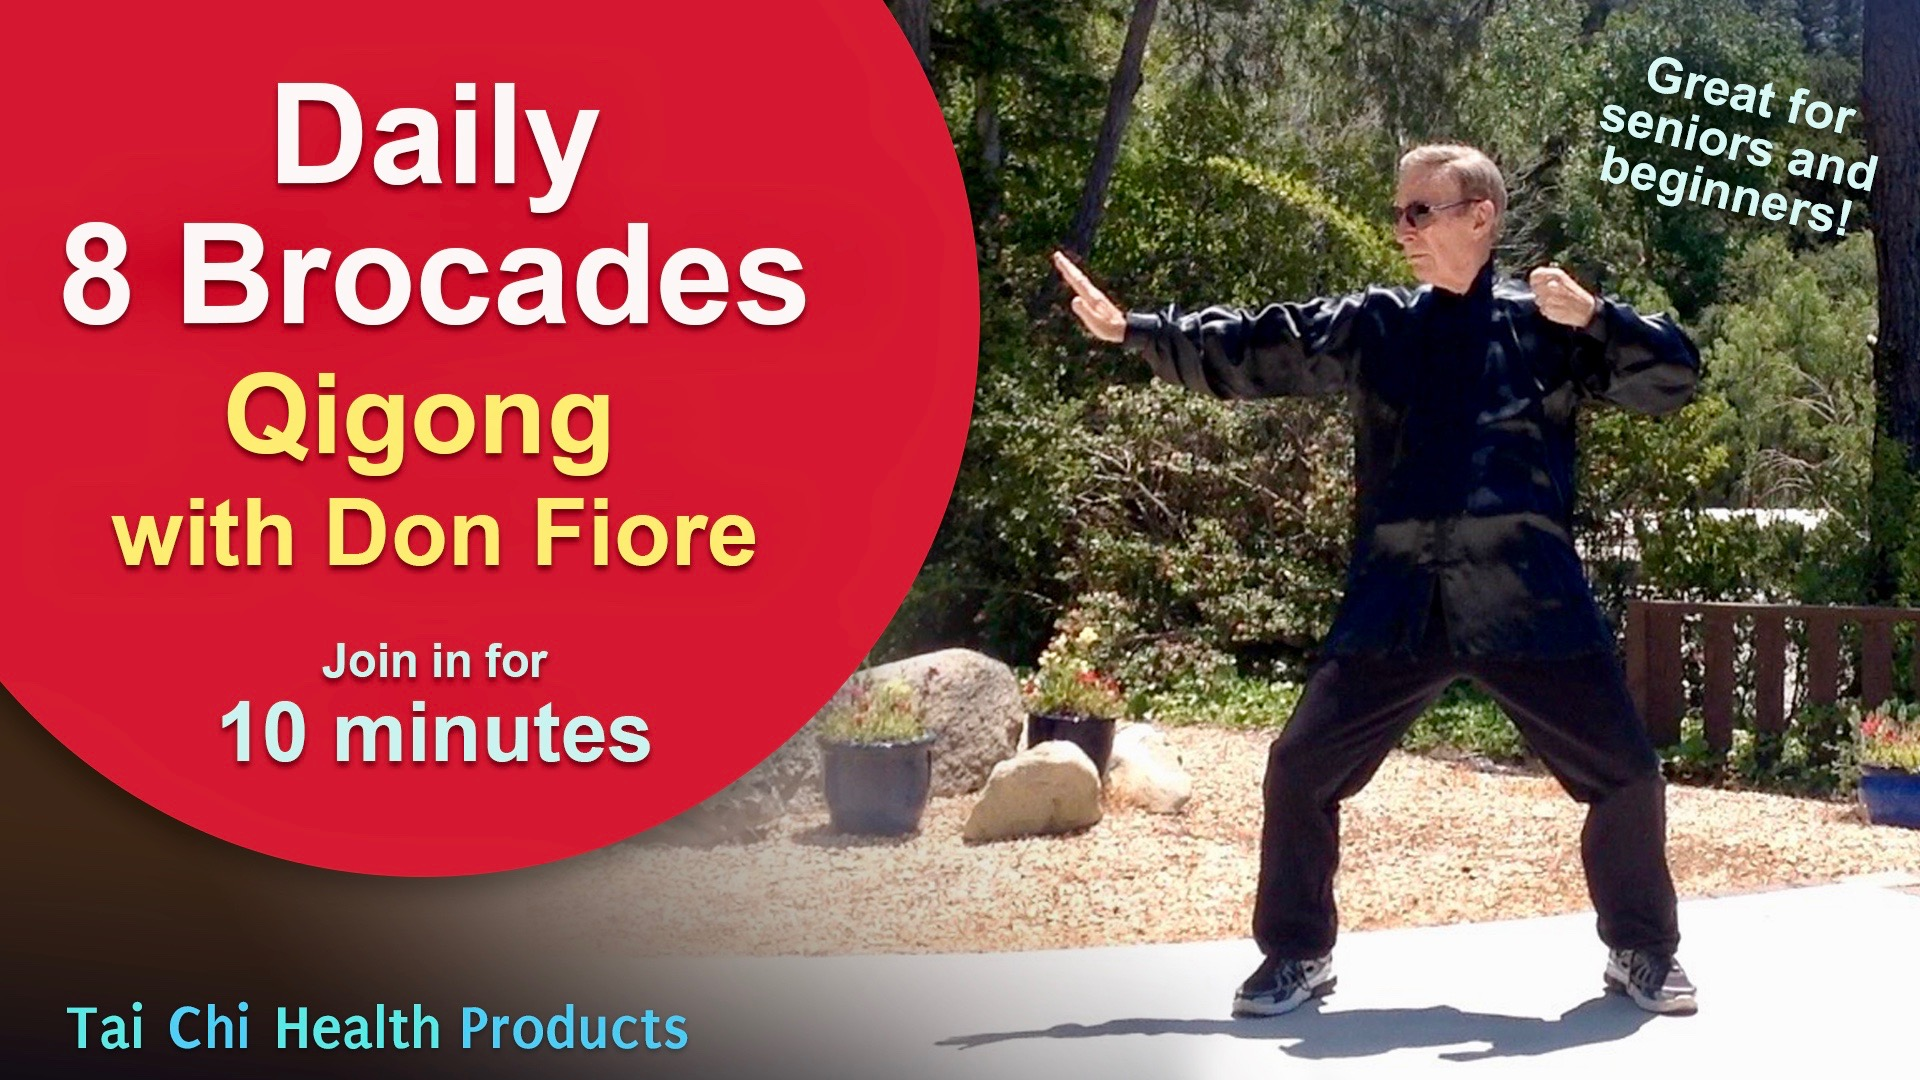 8 Brocades - 10-minute Qigong with Don Fiore